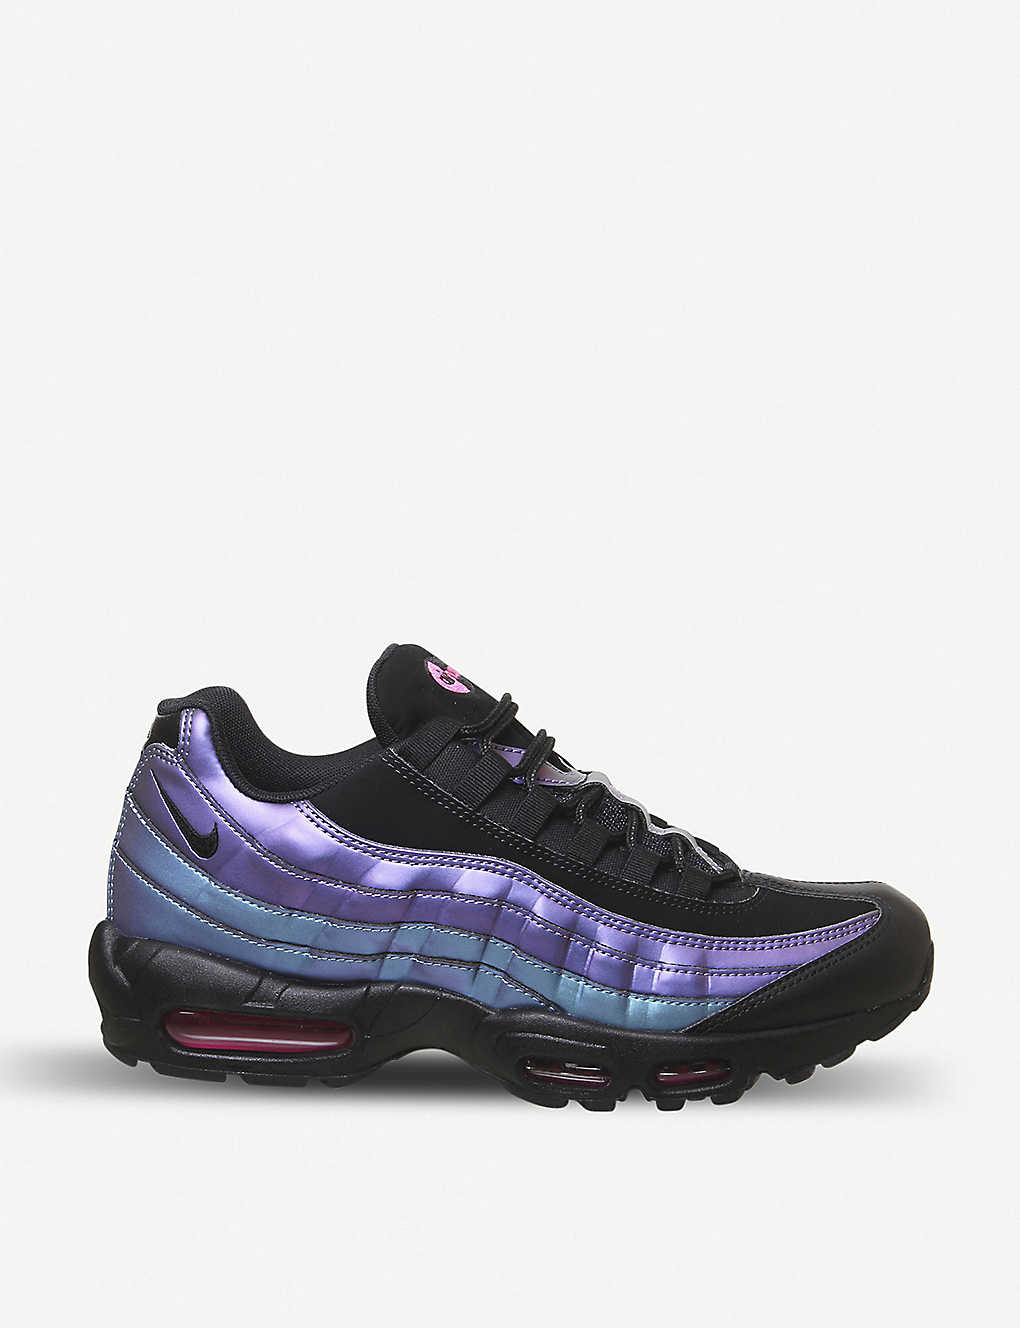 low priced 1832c e766b Air Max 95 leather and synthetic trainers